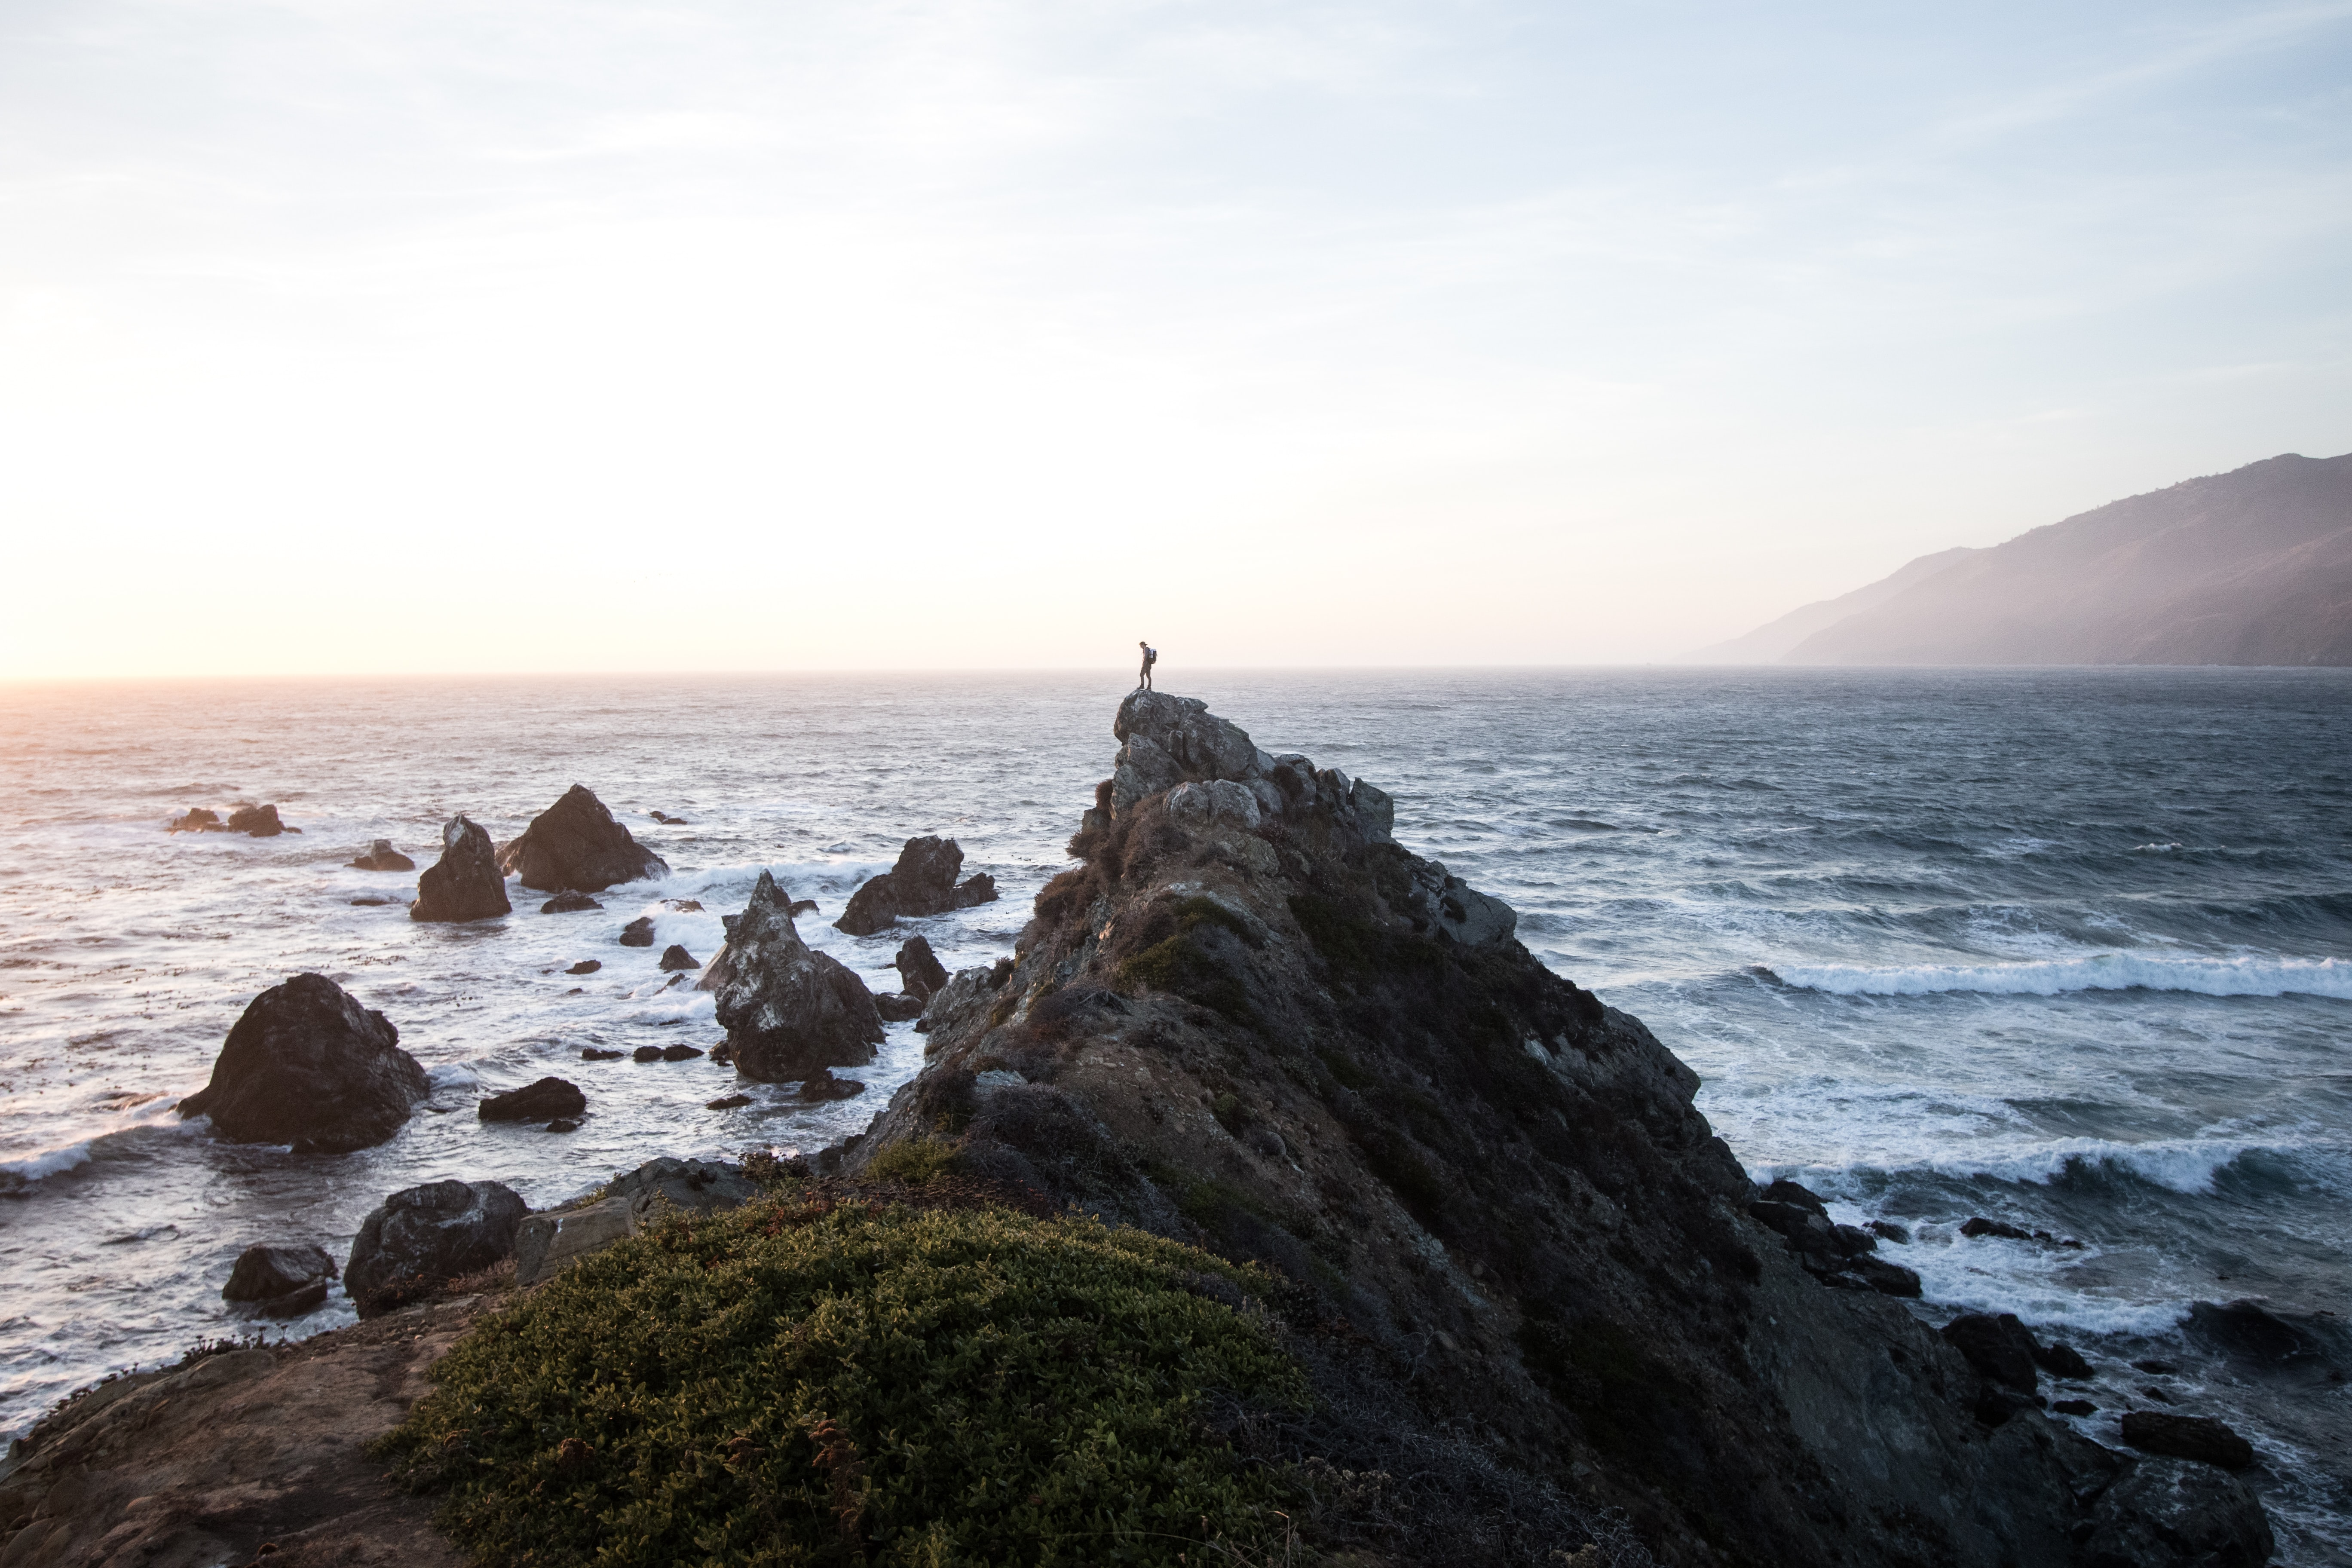 person standing on rock cliff near body of water